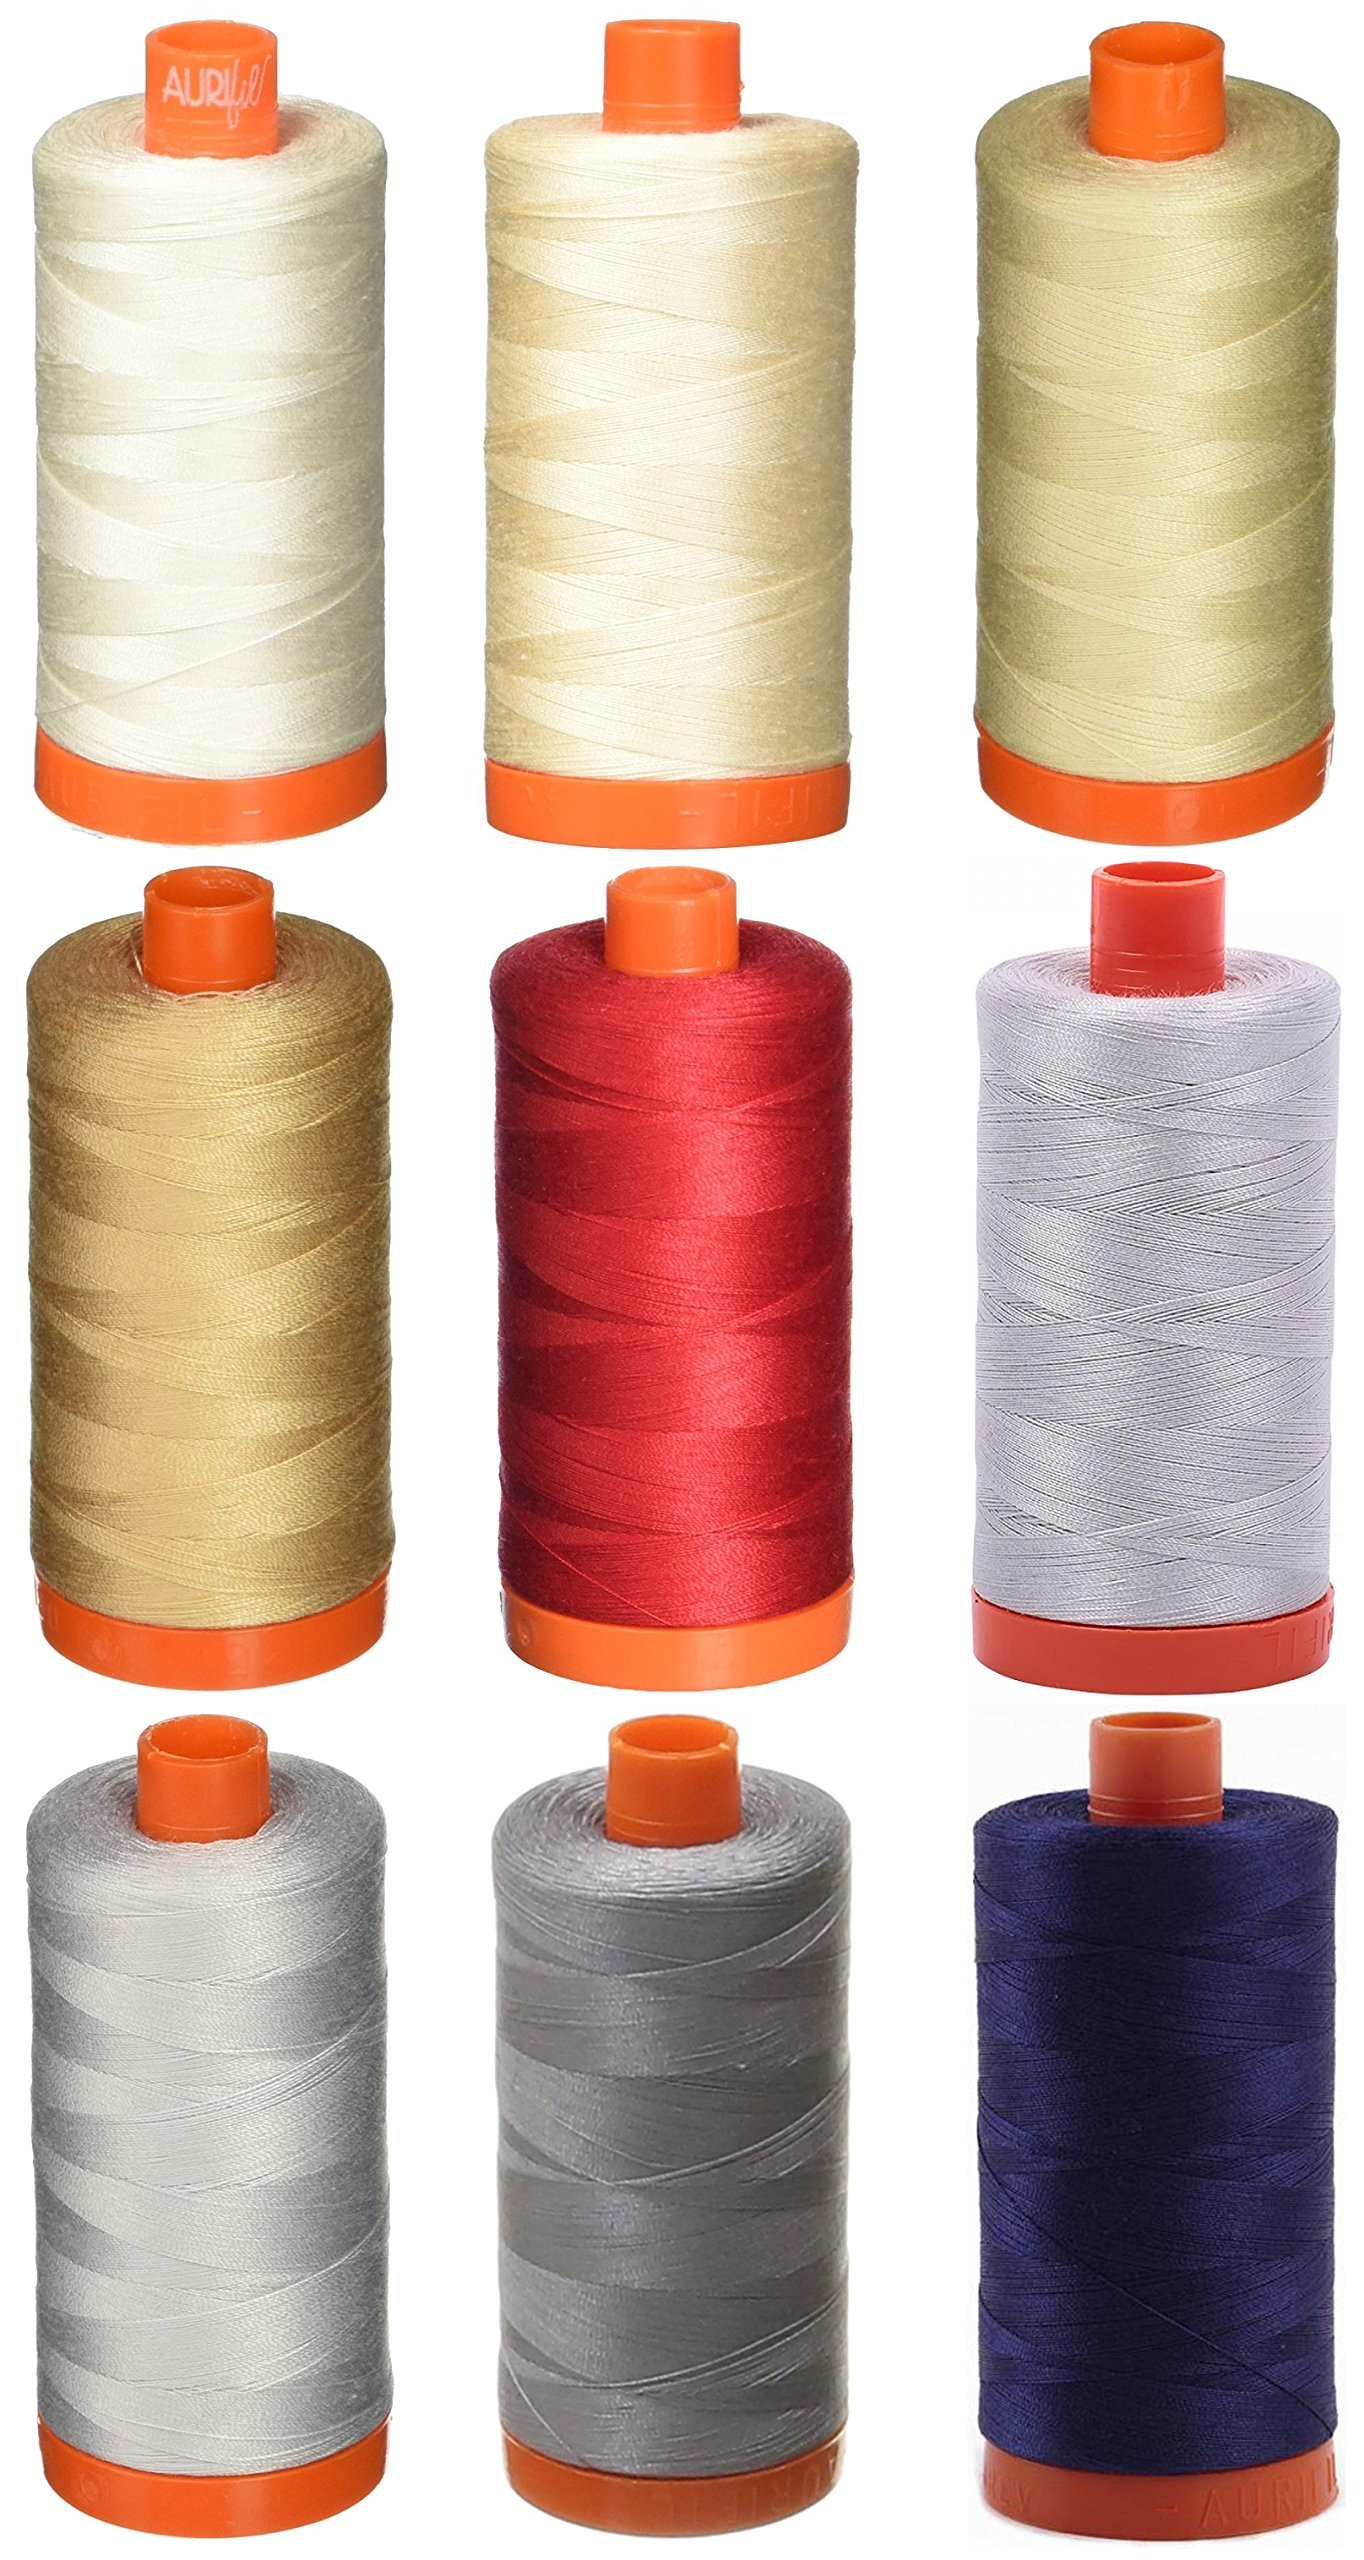 9-PACK - Aurifil 50WT Bundle - Muslin + Light Sand + Light Beige + Beige + Red + Aluminium + Dove + Grey + Dark Navy, - Mako Cotton Thread - 1422Yds EACH by Aurifil